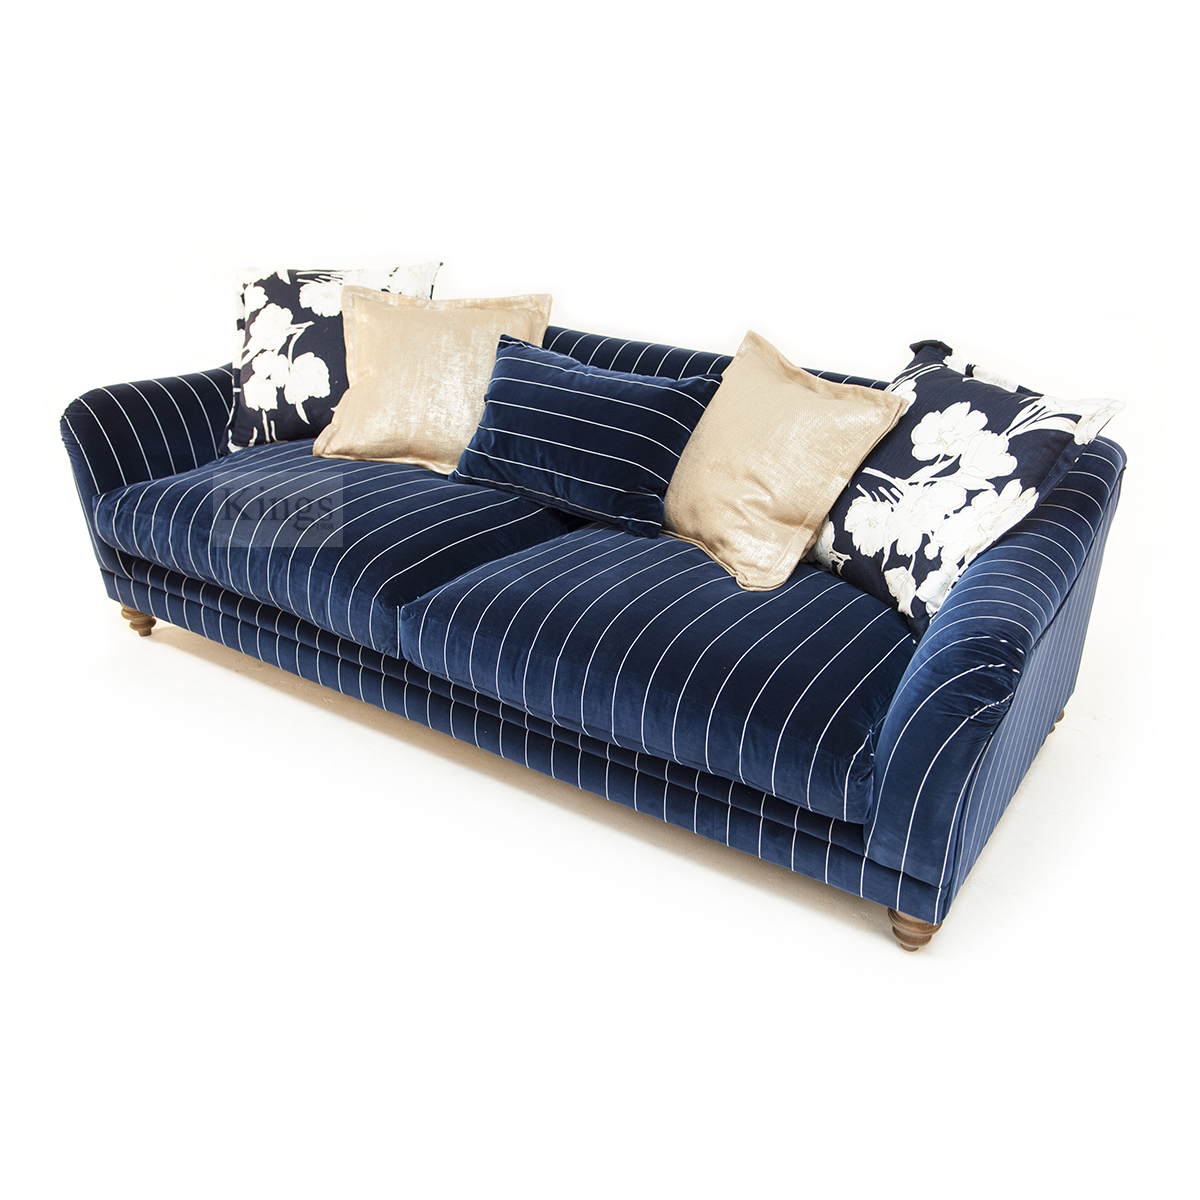 Tetrad Upholstery In Ralph Lauren Signature Fabric The